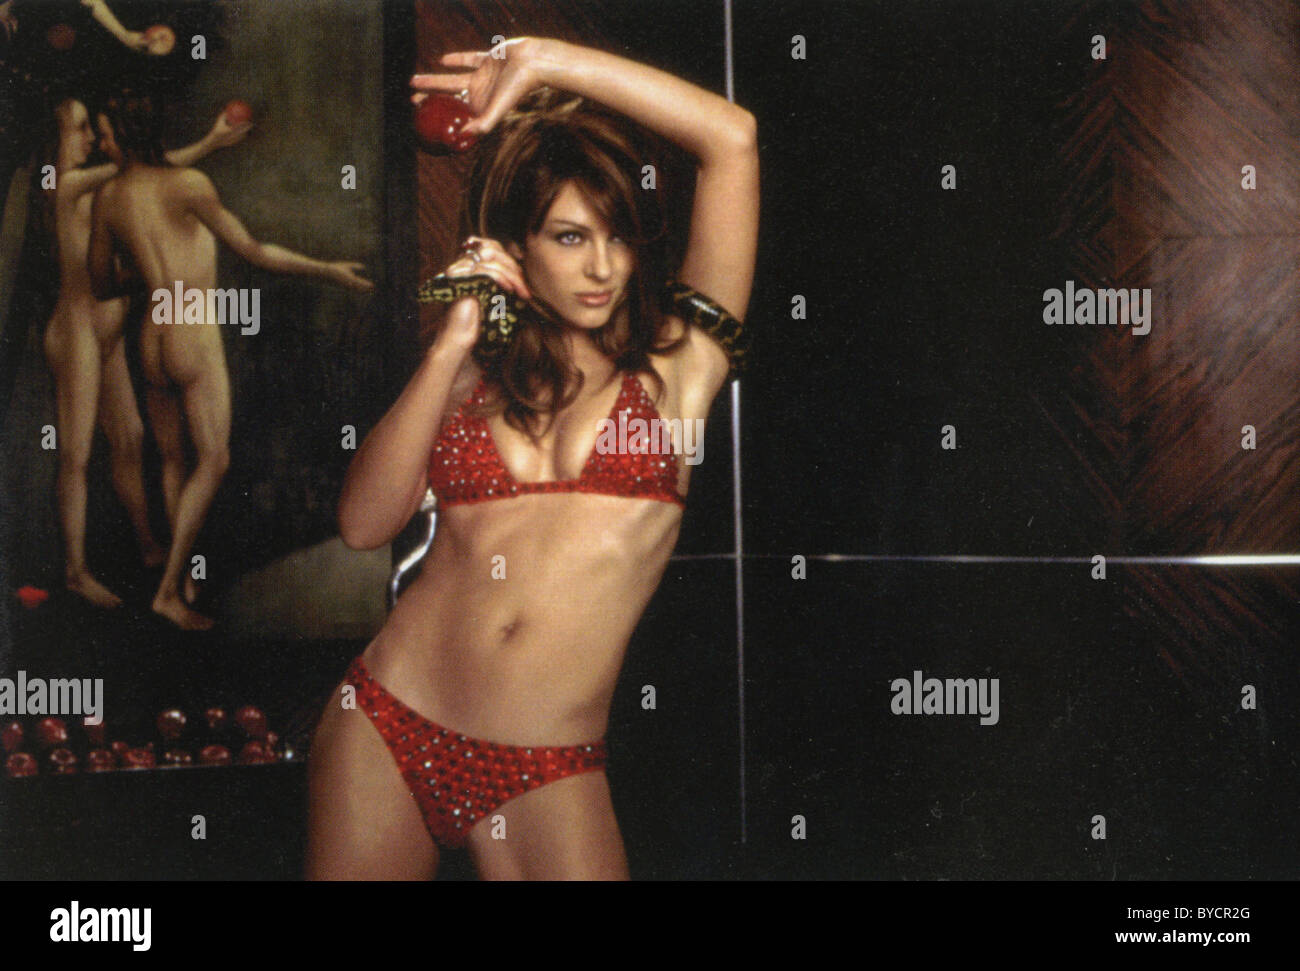 BEDAZZLED 2000 TCF film with Elizabeth Hurley - Stock Image